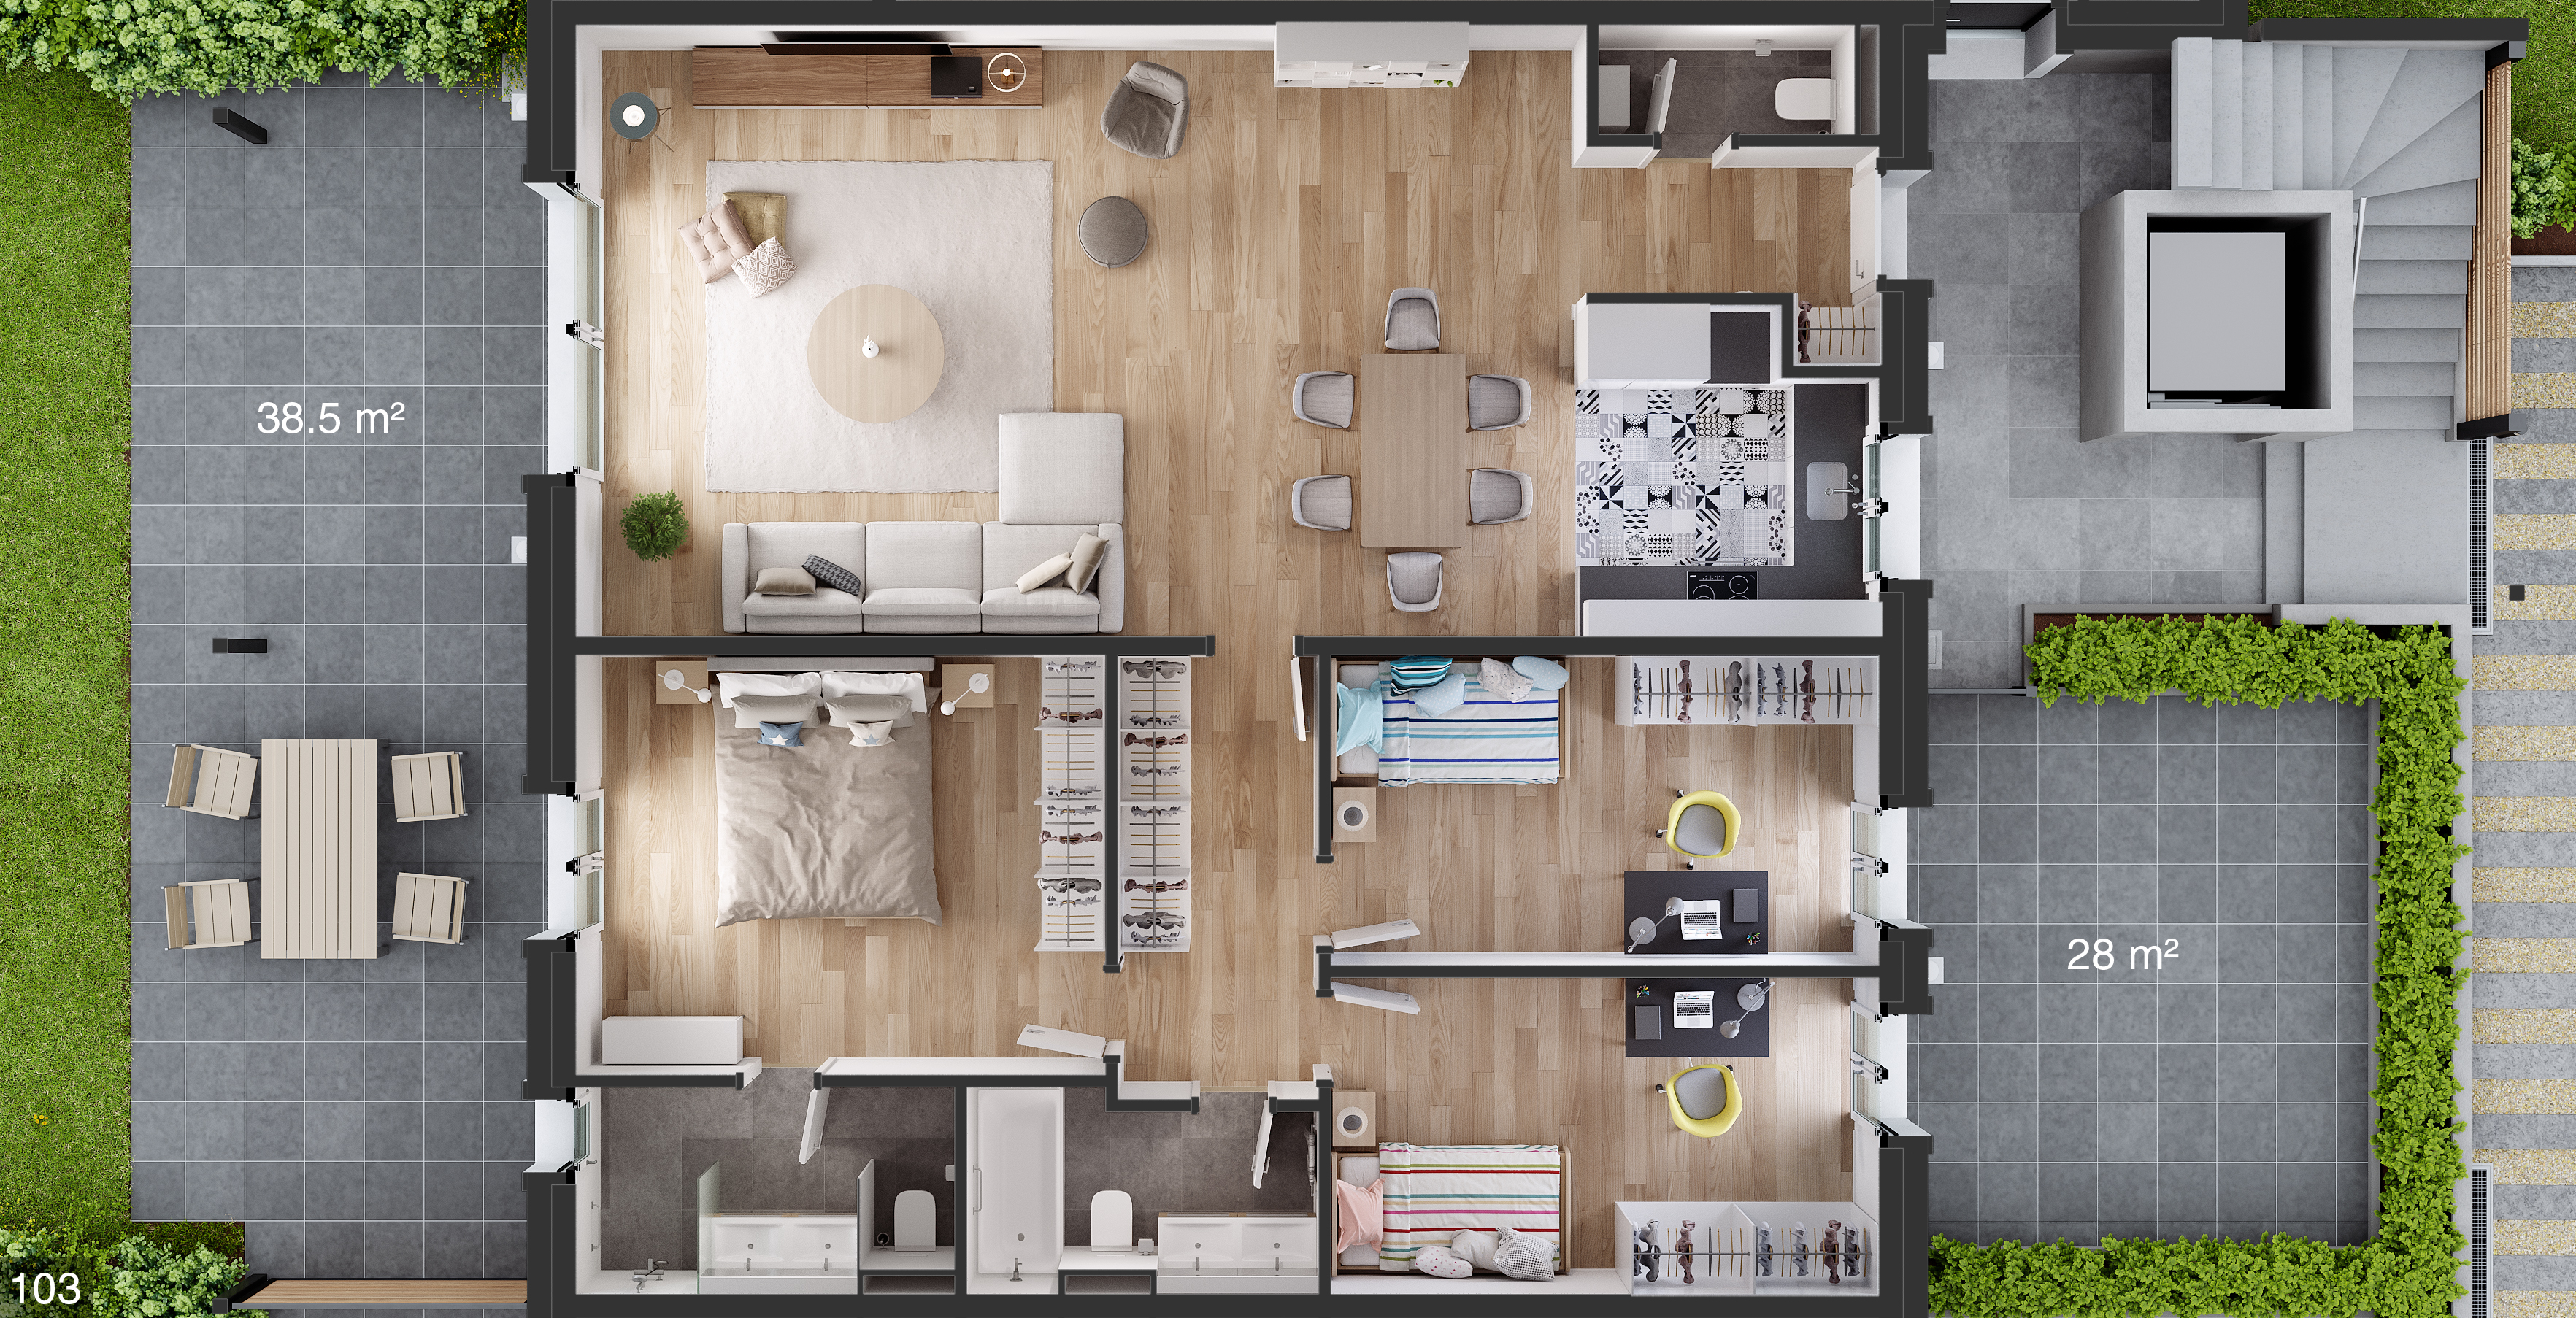 projet immobilier collex-bossy